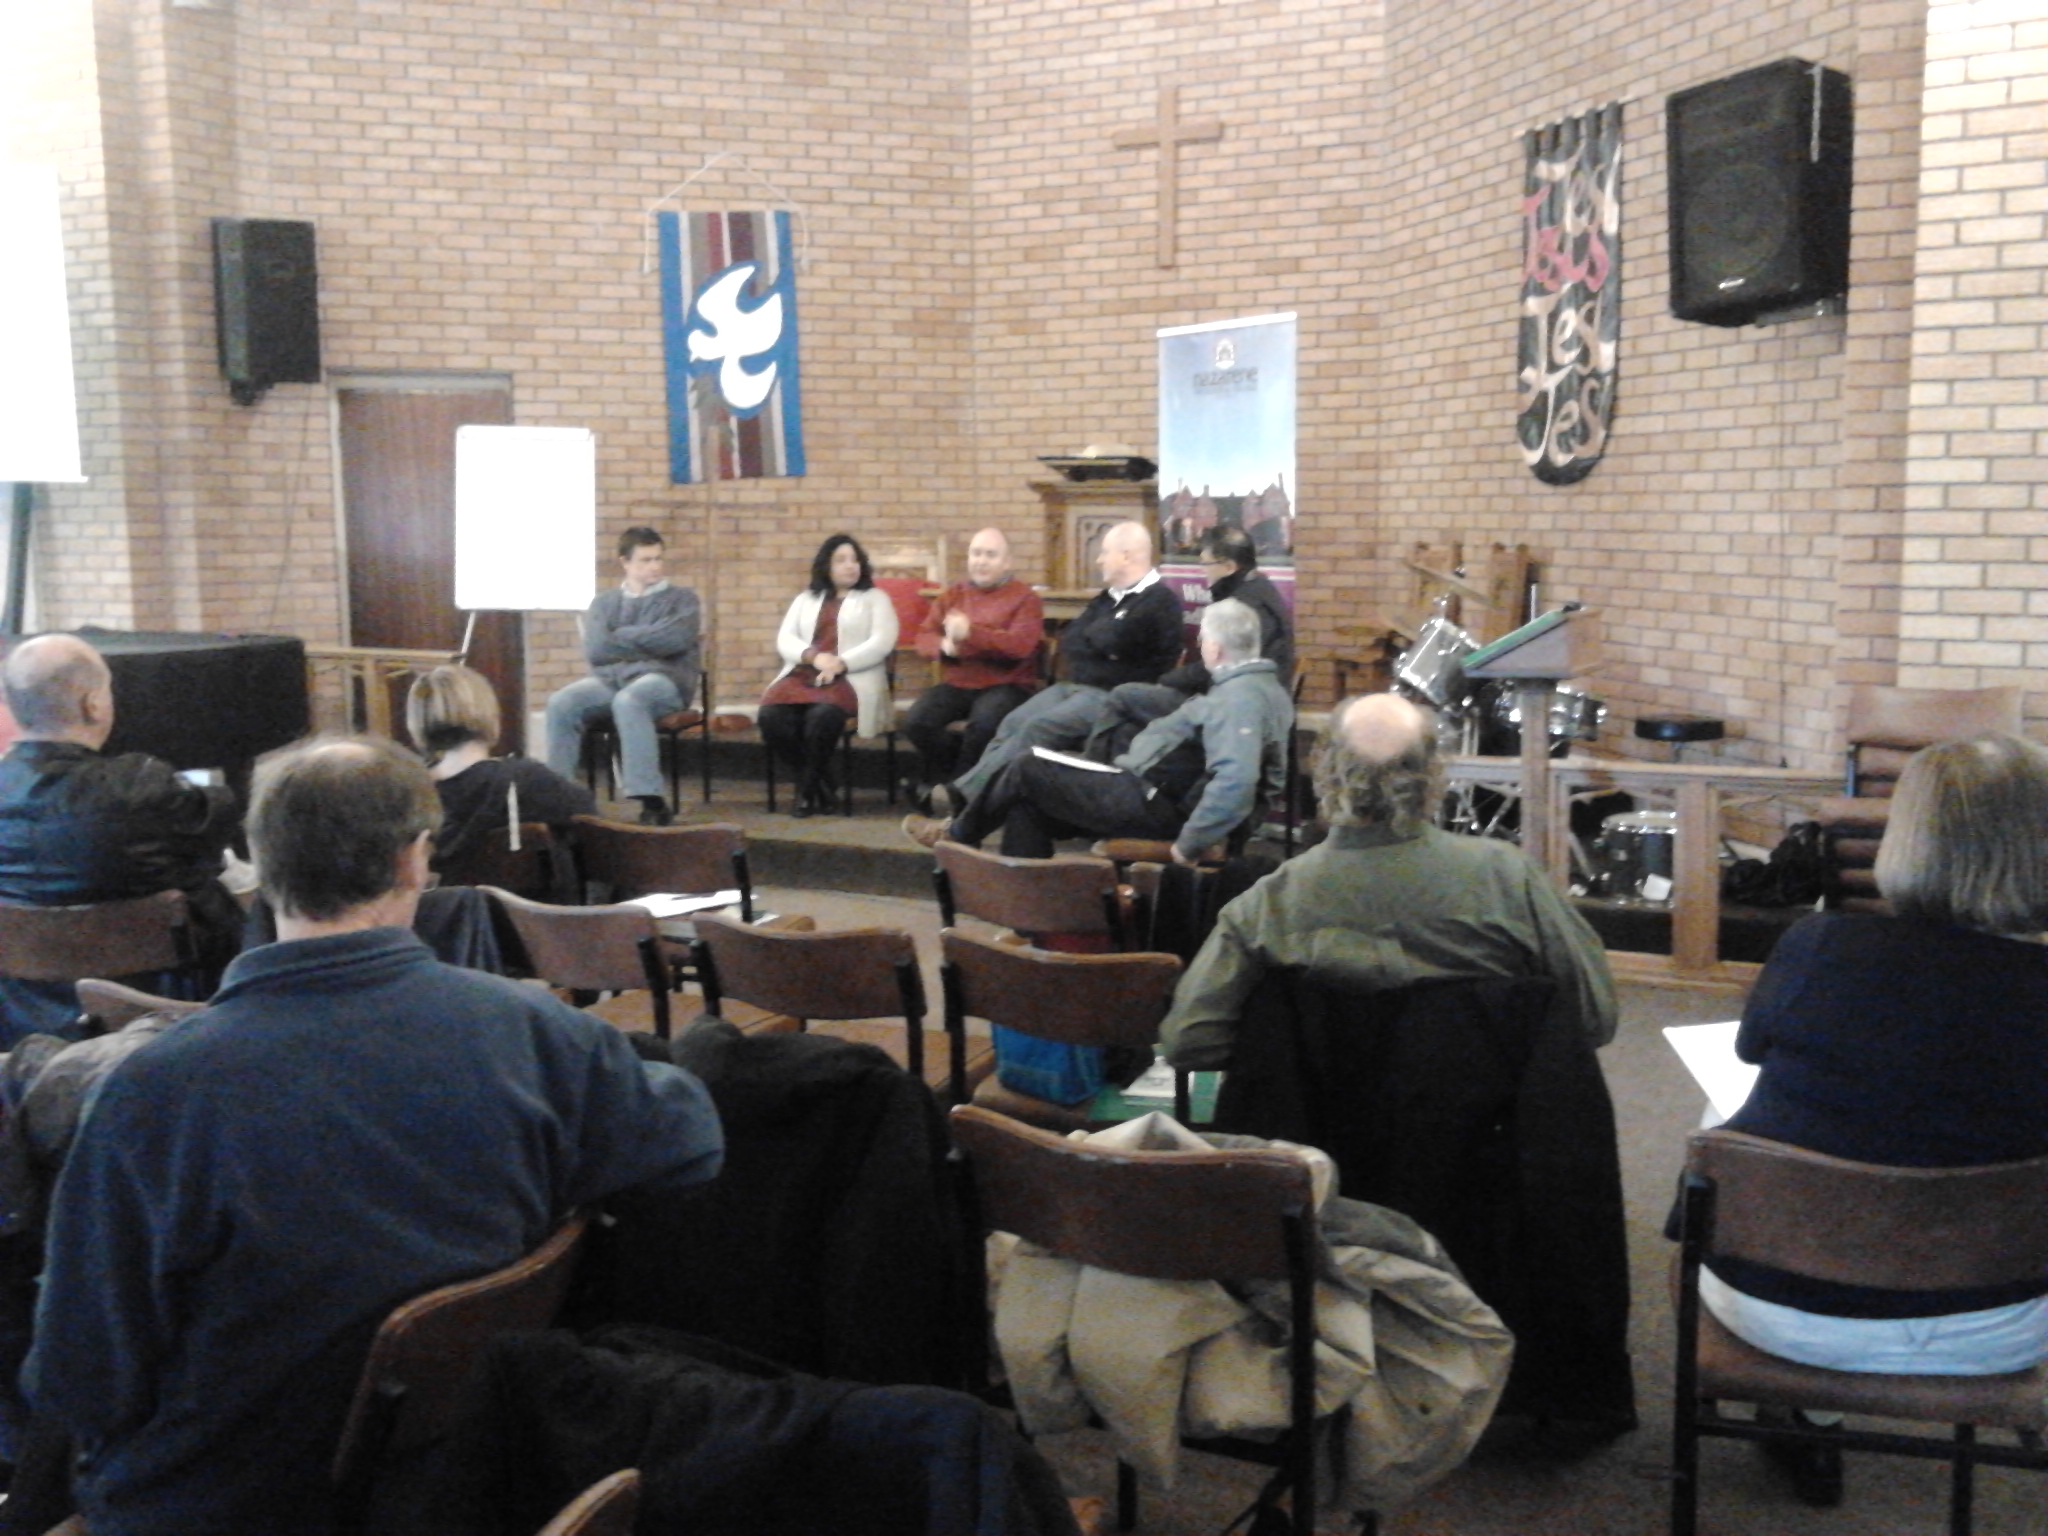 A group of people in a discussion panel with audience watching